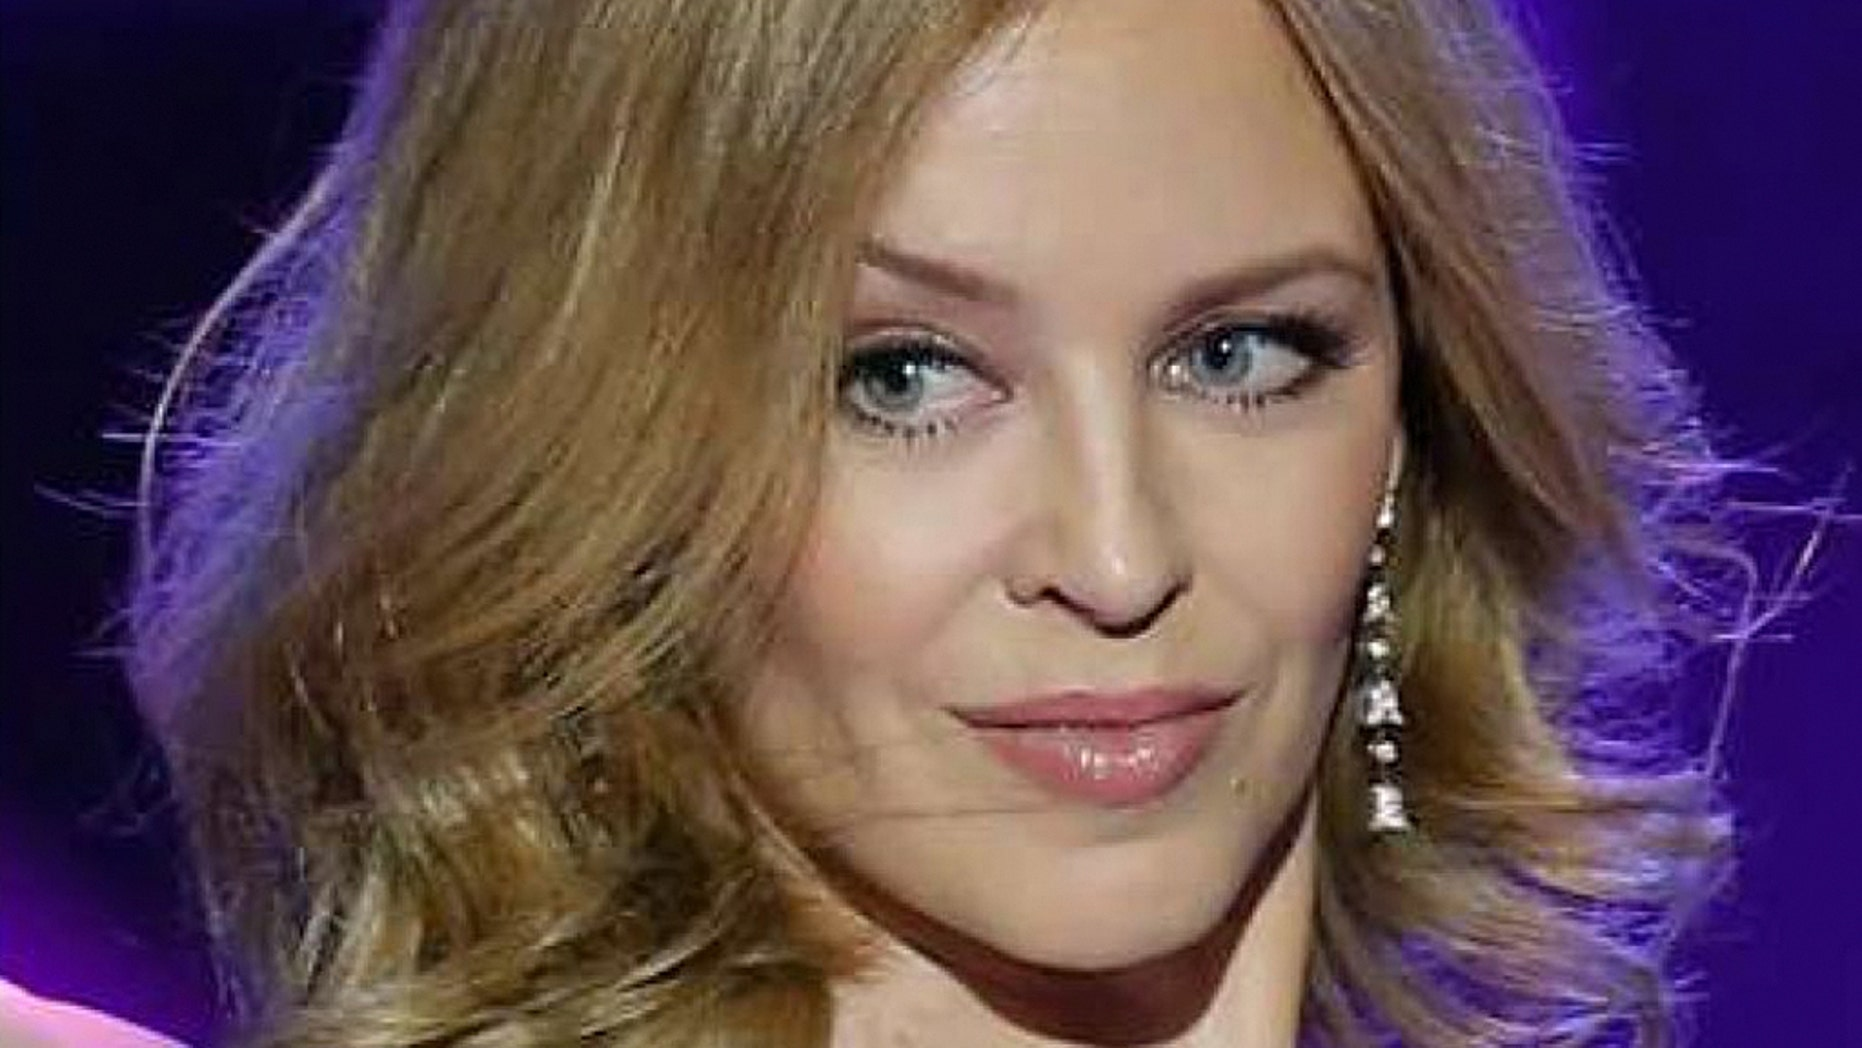 Australian singer Kylie Minogue reportedly called the police after she was being harassed by a man at her London residence.